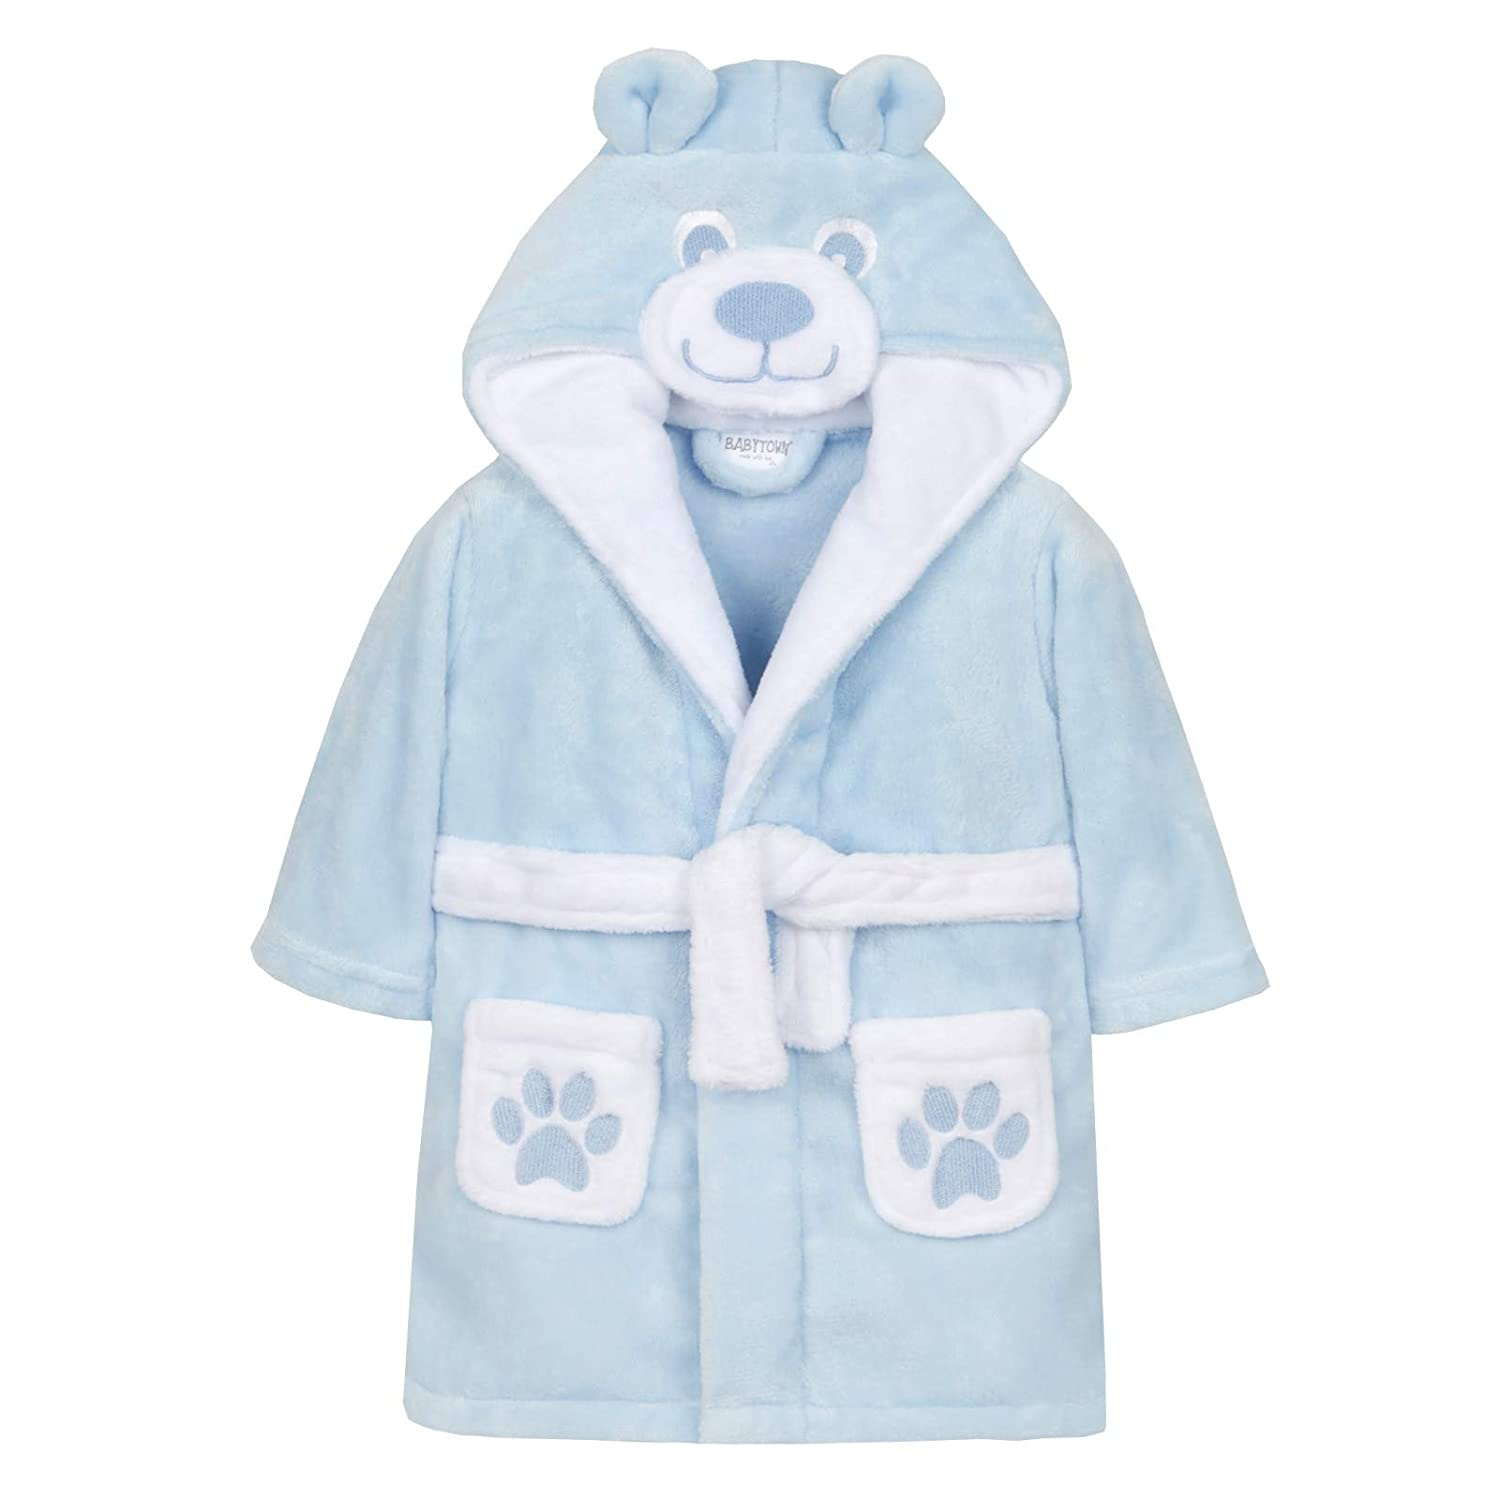 Baby Boys 3D Teddy Bear Dressing Gown Shoe Directory LB101526